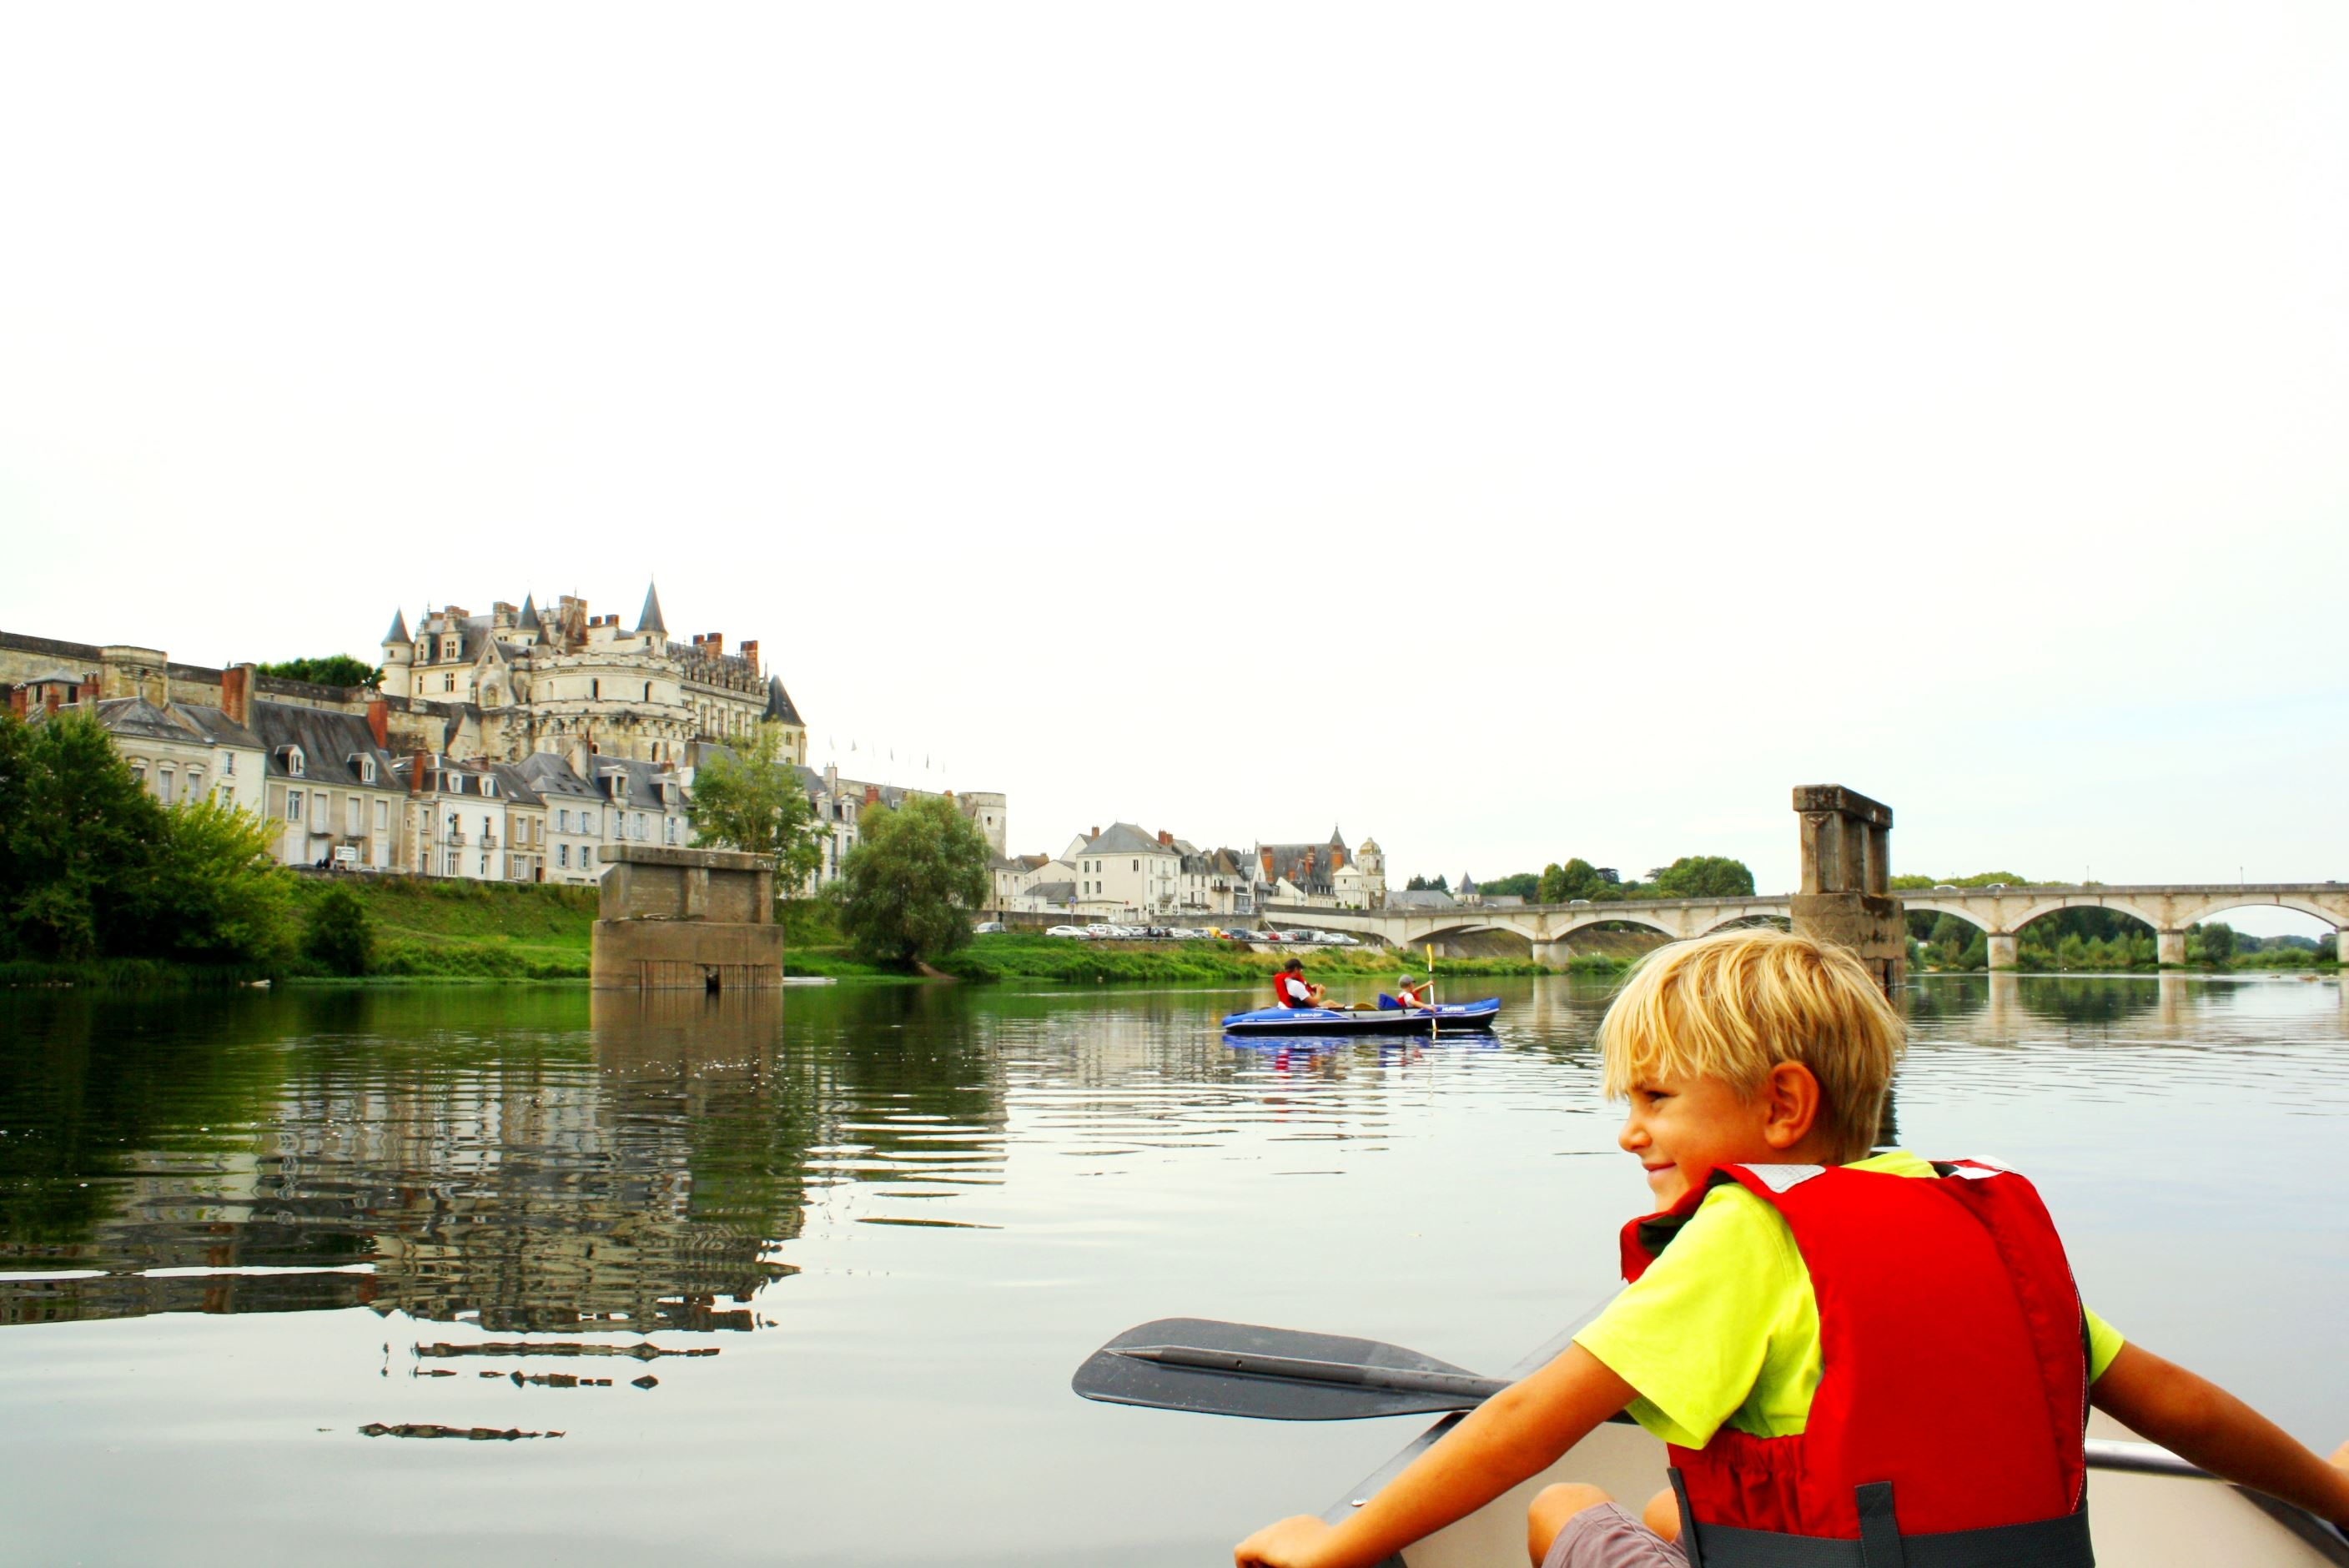 CANOE RENTAL FROM AMBOISE TO TOURS / ONE DAY